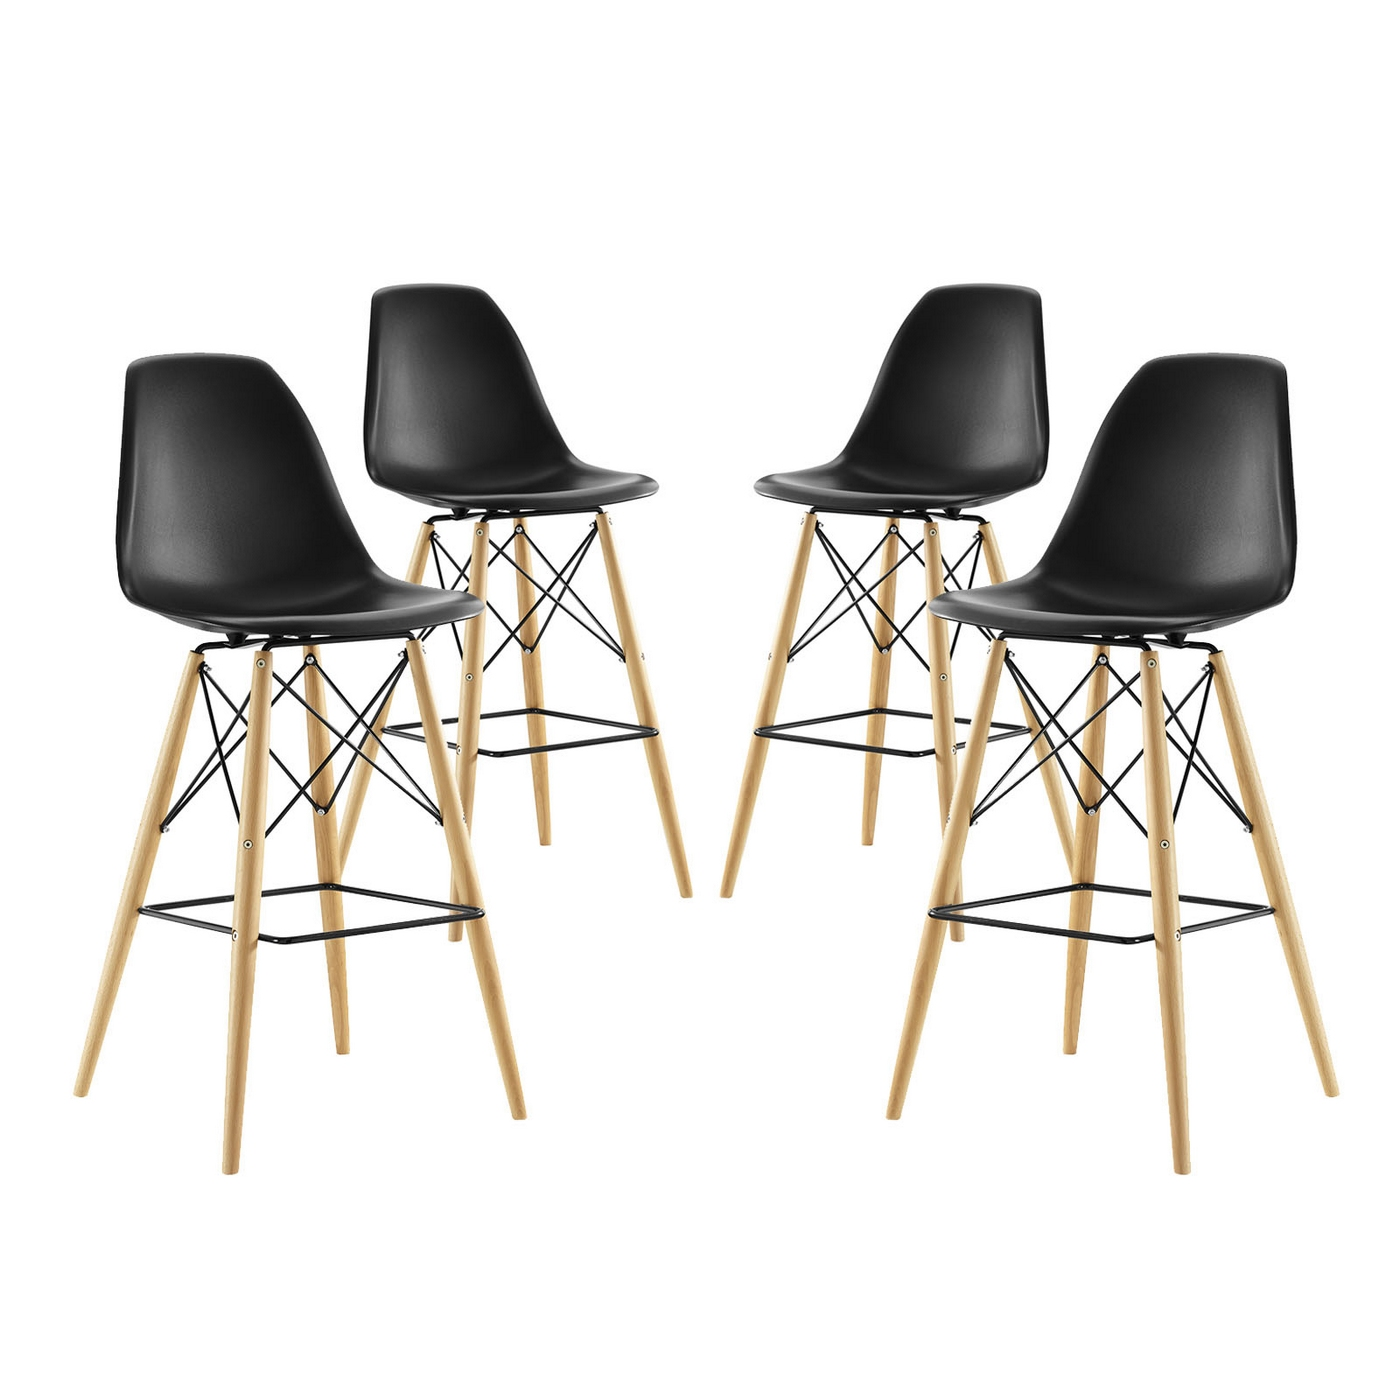 black plastic chair with wooden legs soccer mom chairs set of 4 pyramid modern deep seat molded bar